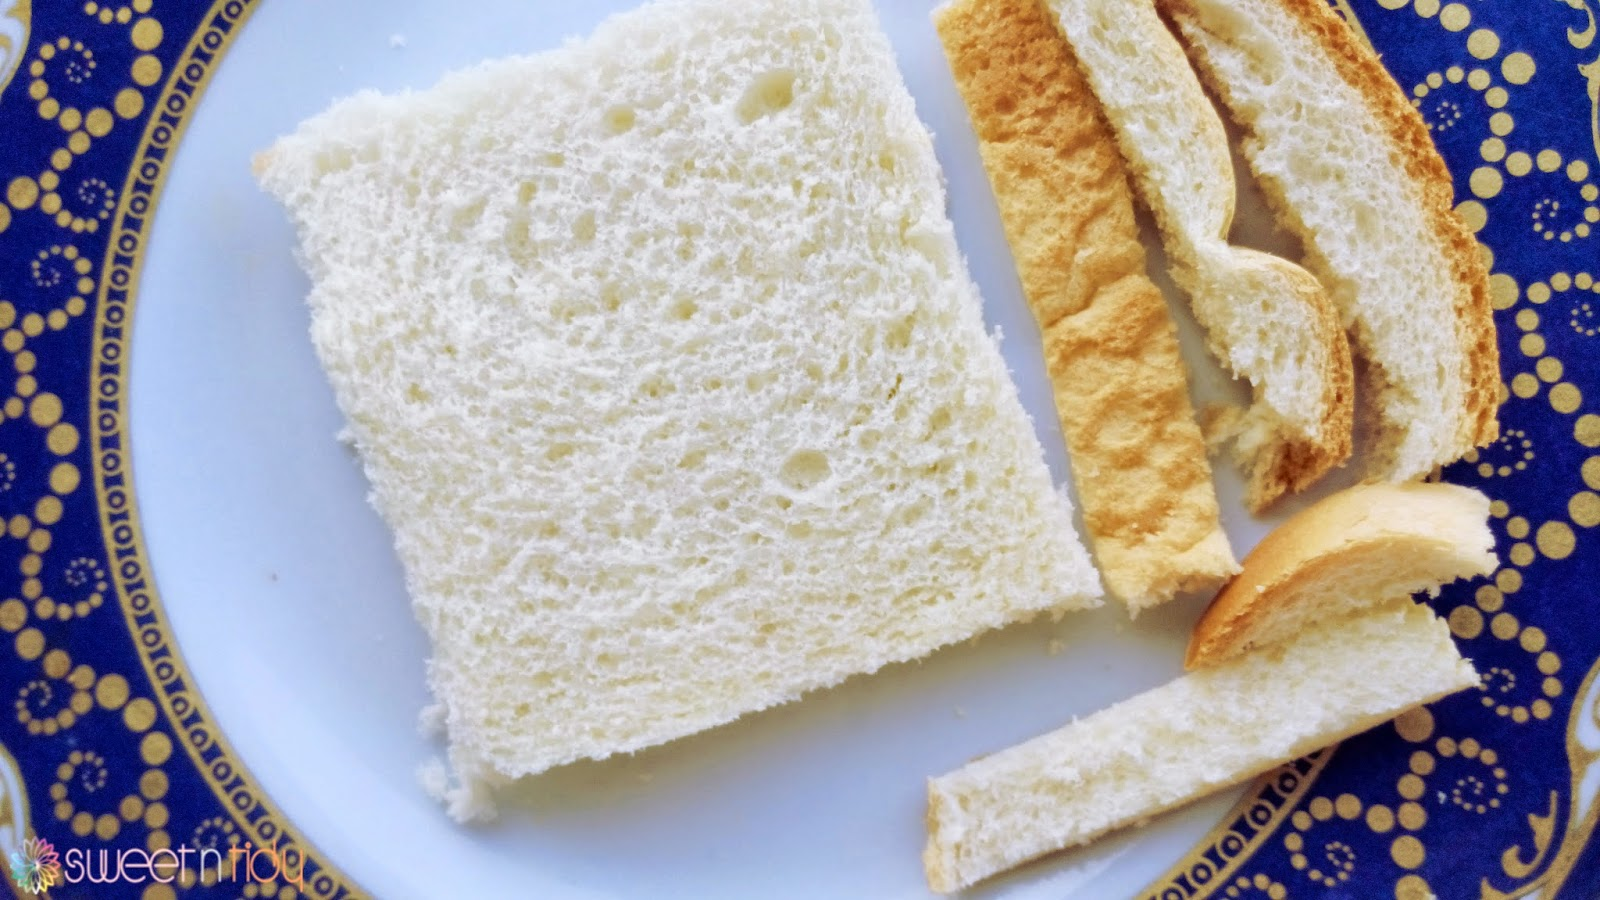 How to make candy toast